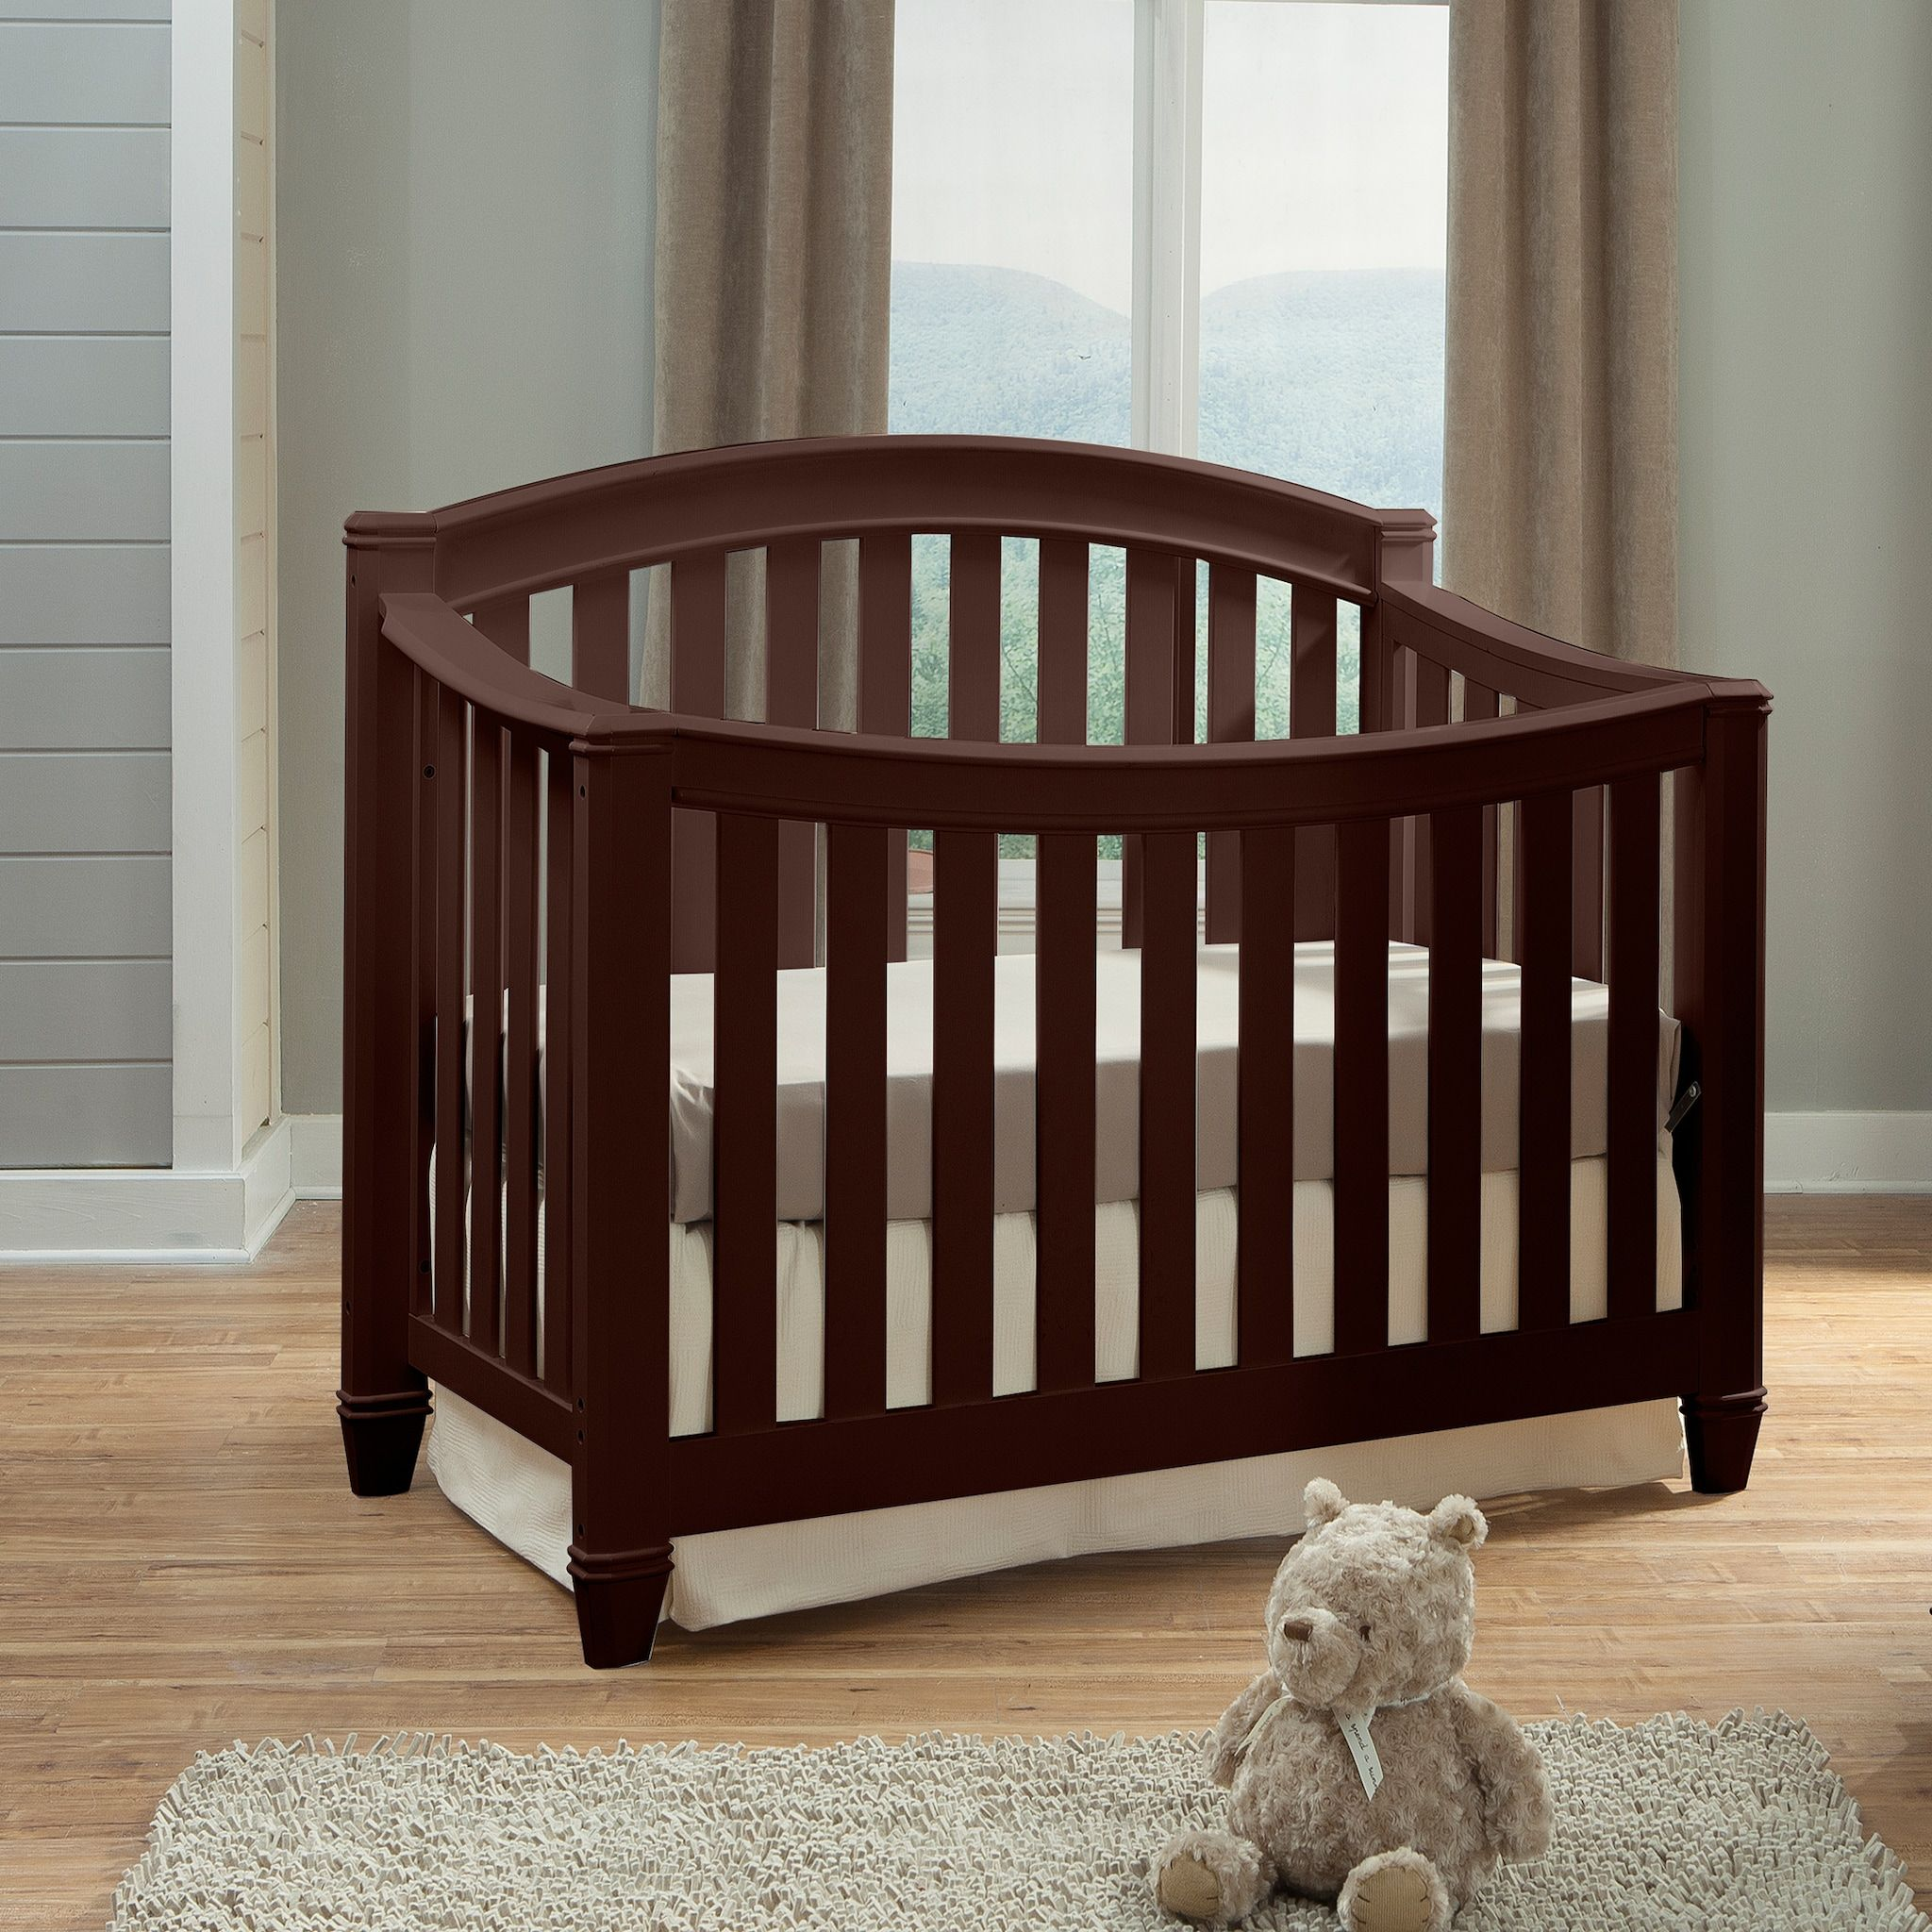 Thomasville Kids Highlands 4in1 Convertible Crib (With